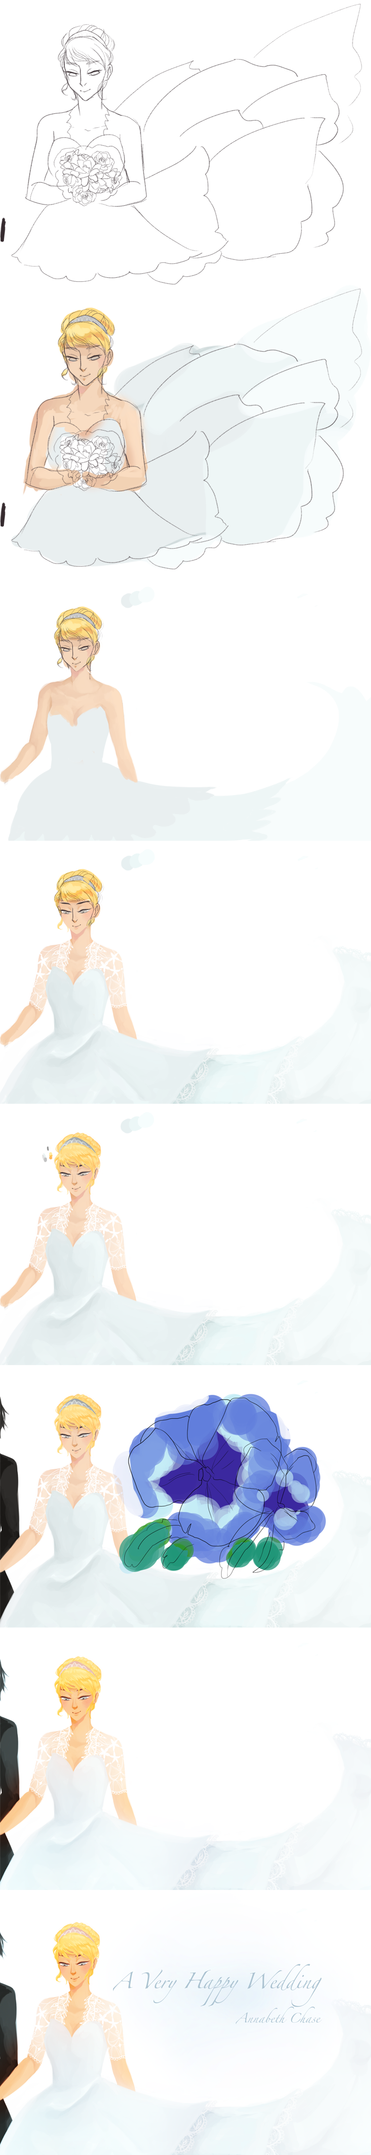 Steps of 'A Very Happy Wedding' by tea52